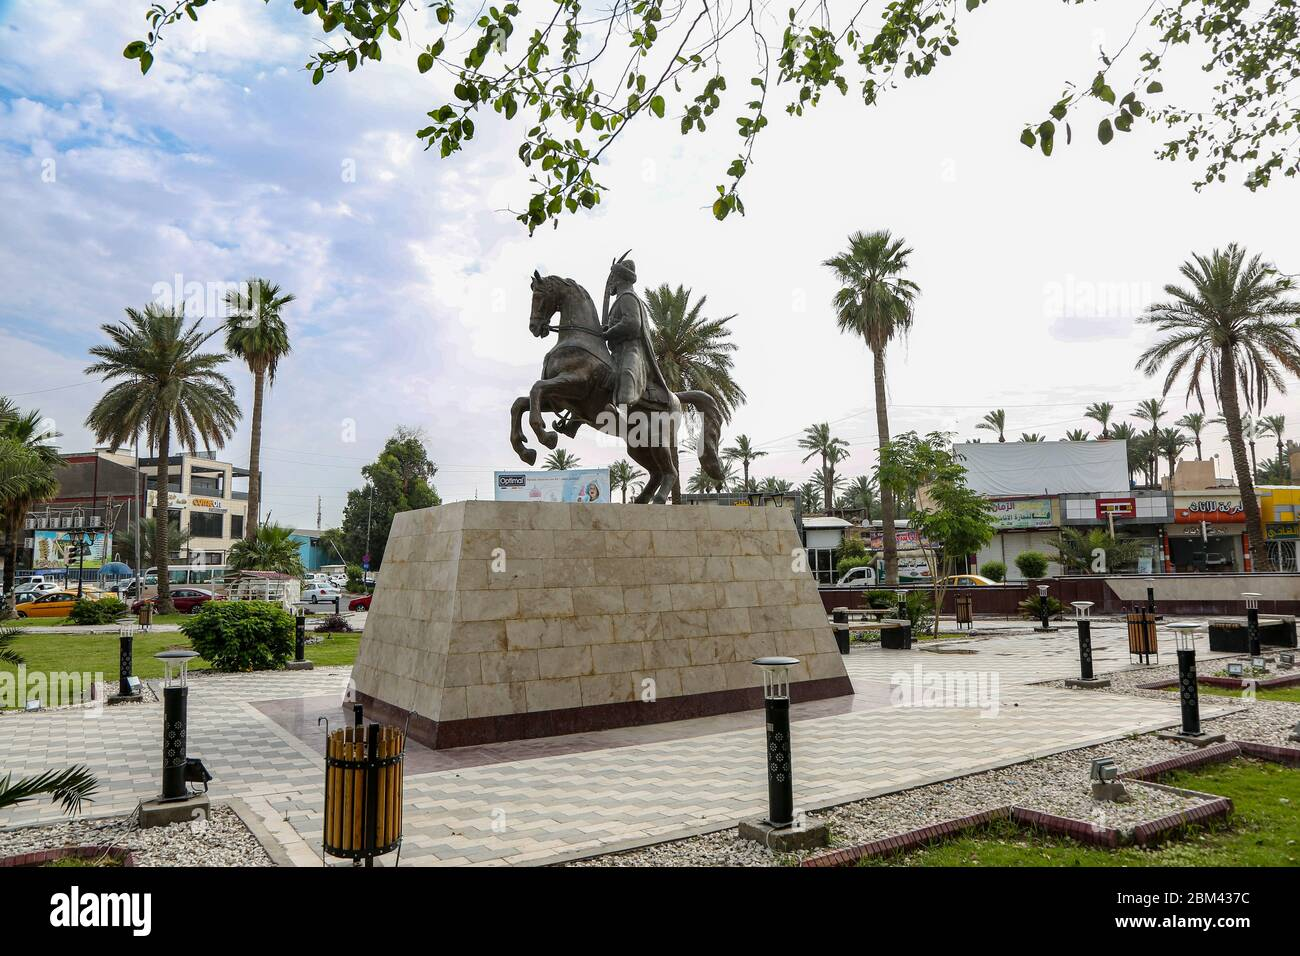 Iraq Street In Baghdad Photo High Resolution Stock Photography And Images Alamy